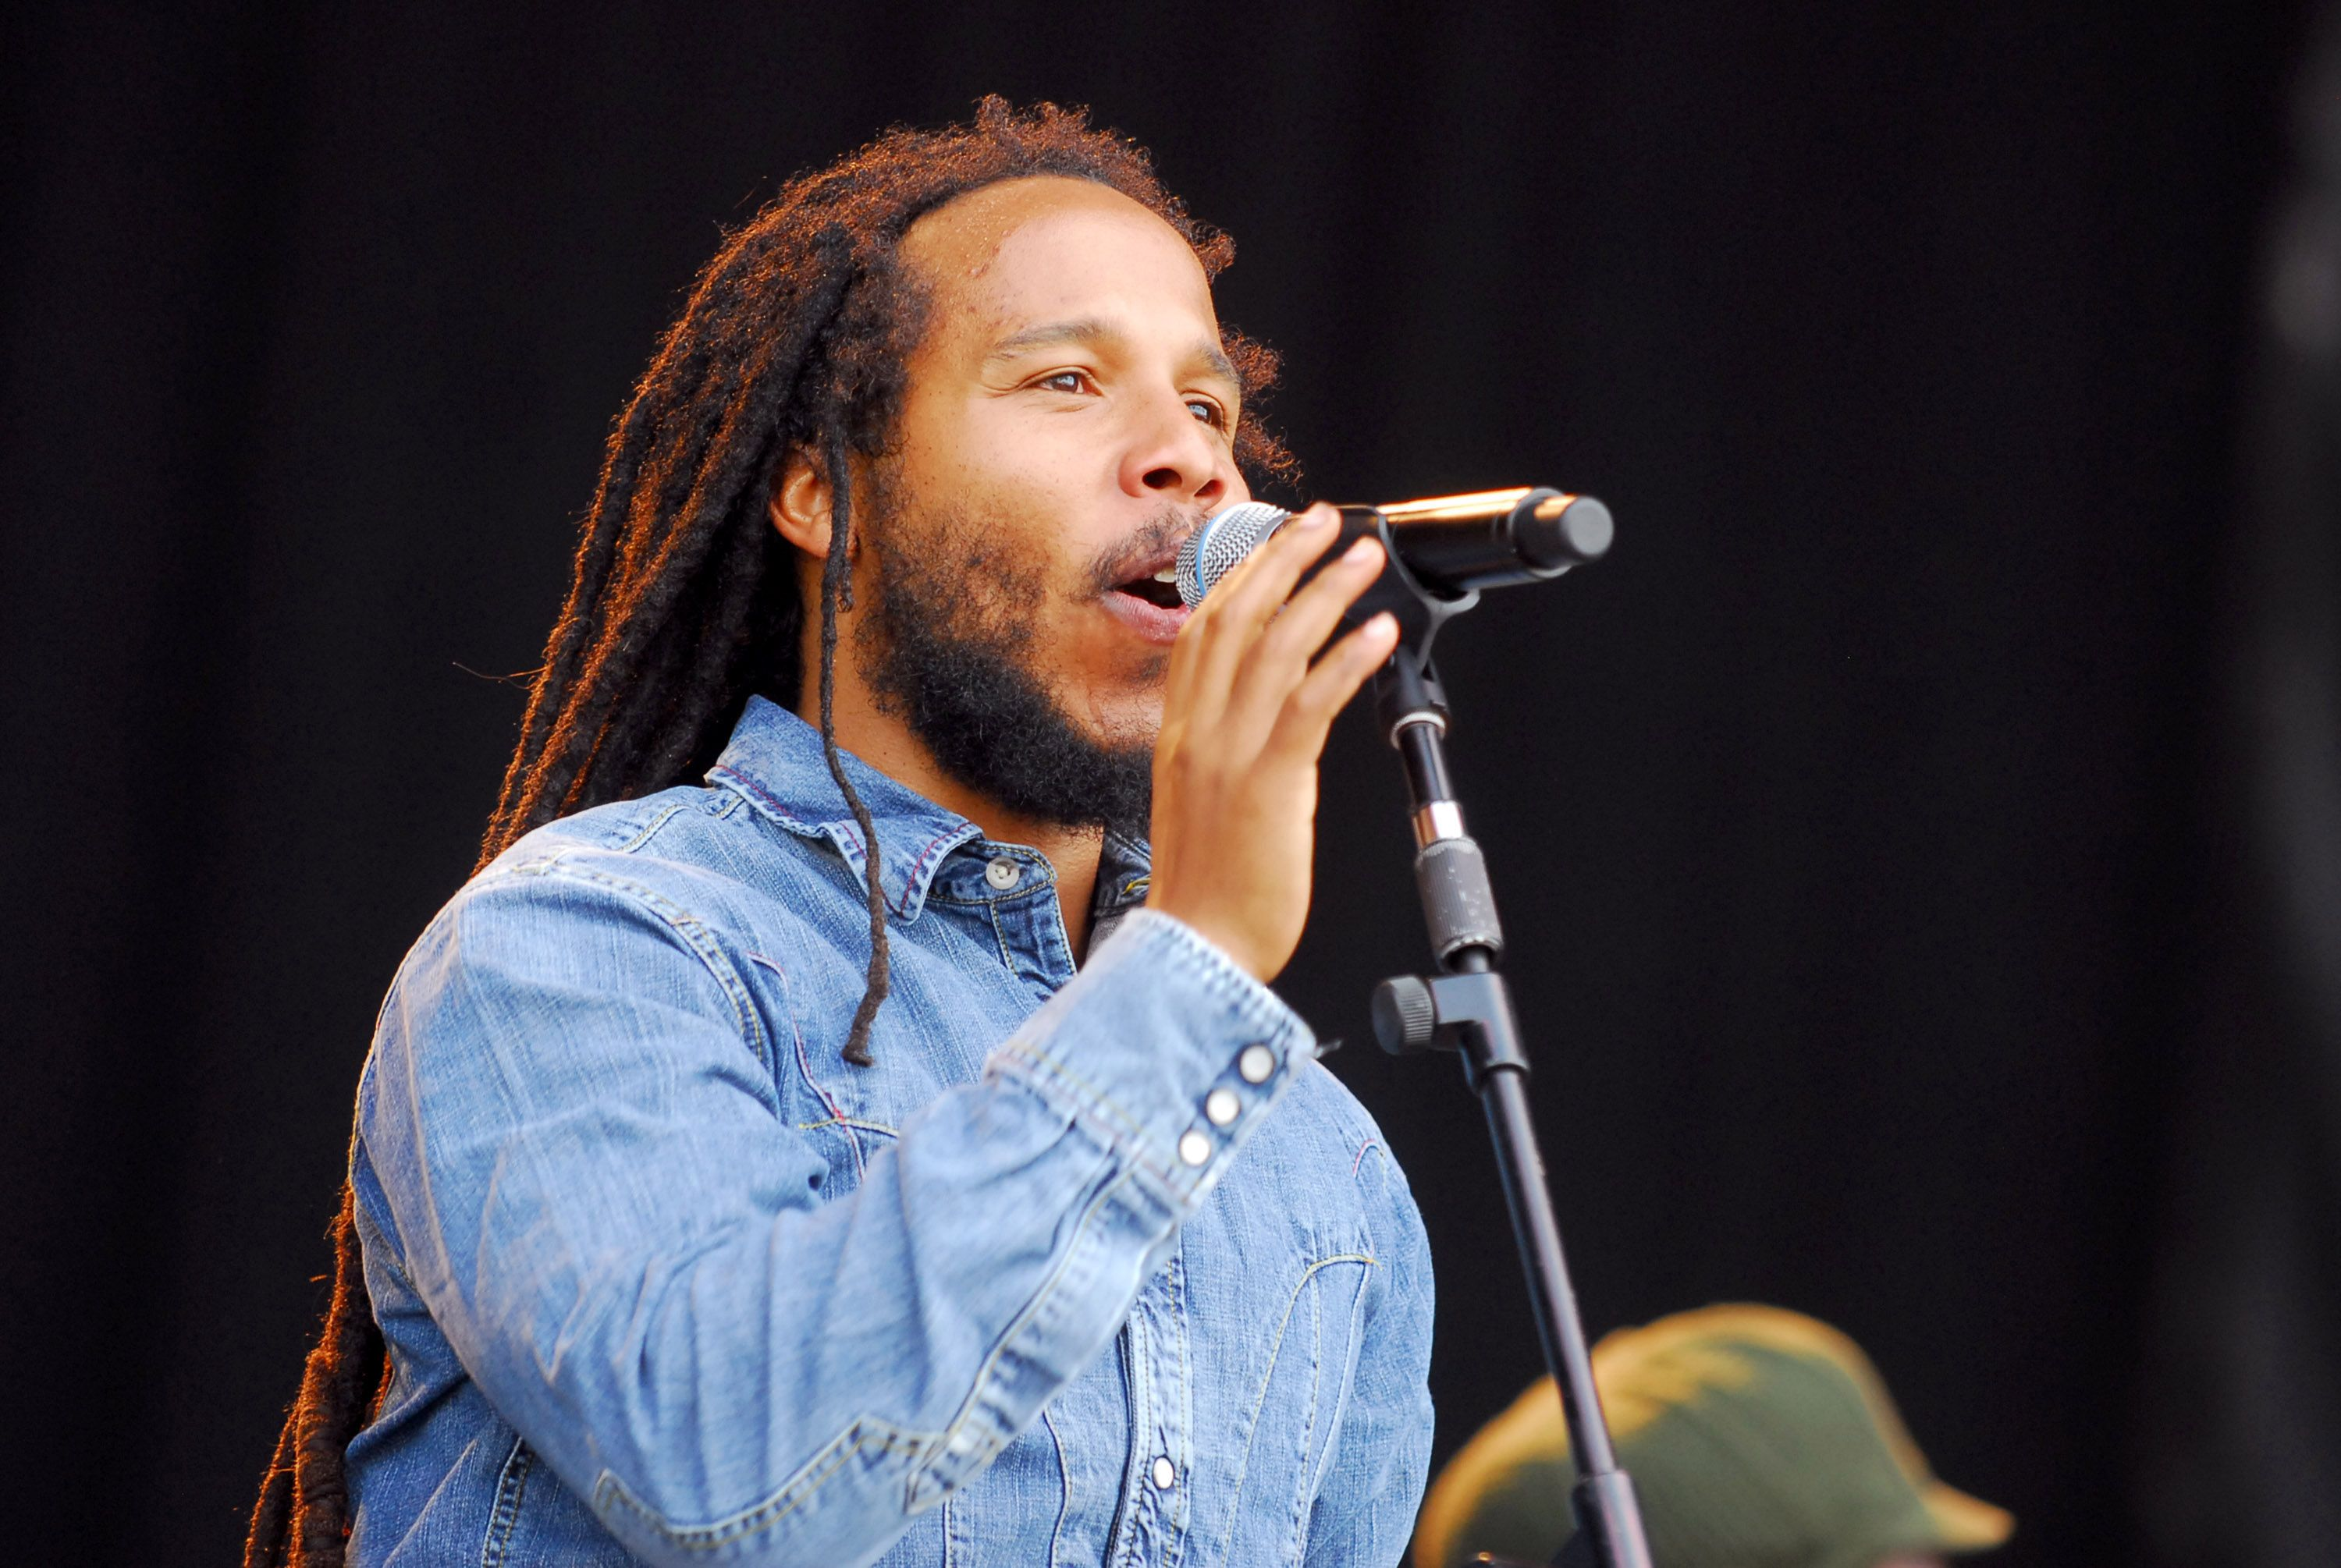 Ziggy Marley sings in Manchester, Tennessee, at the Bonnaroo Music and Arts Festival in 2007. | Photo: Getty Images